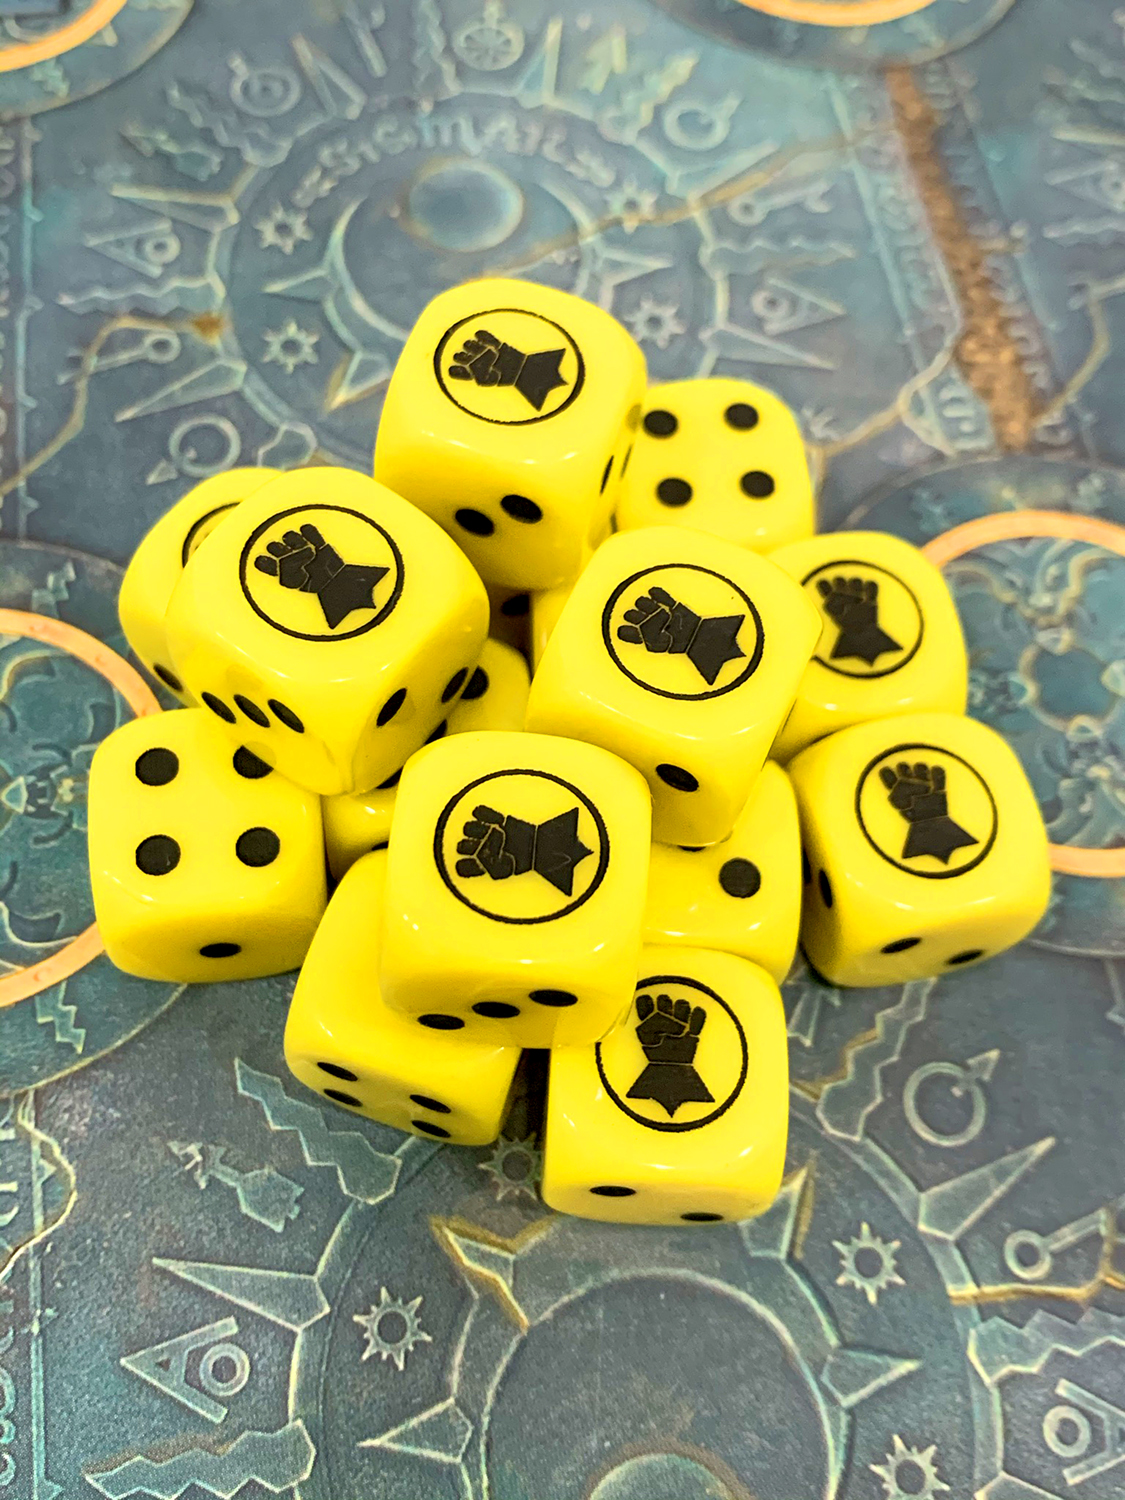 Rounded cornes solid dice